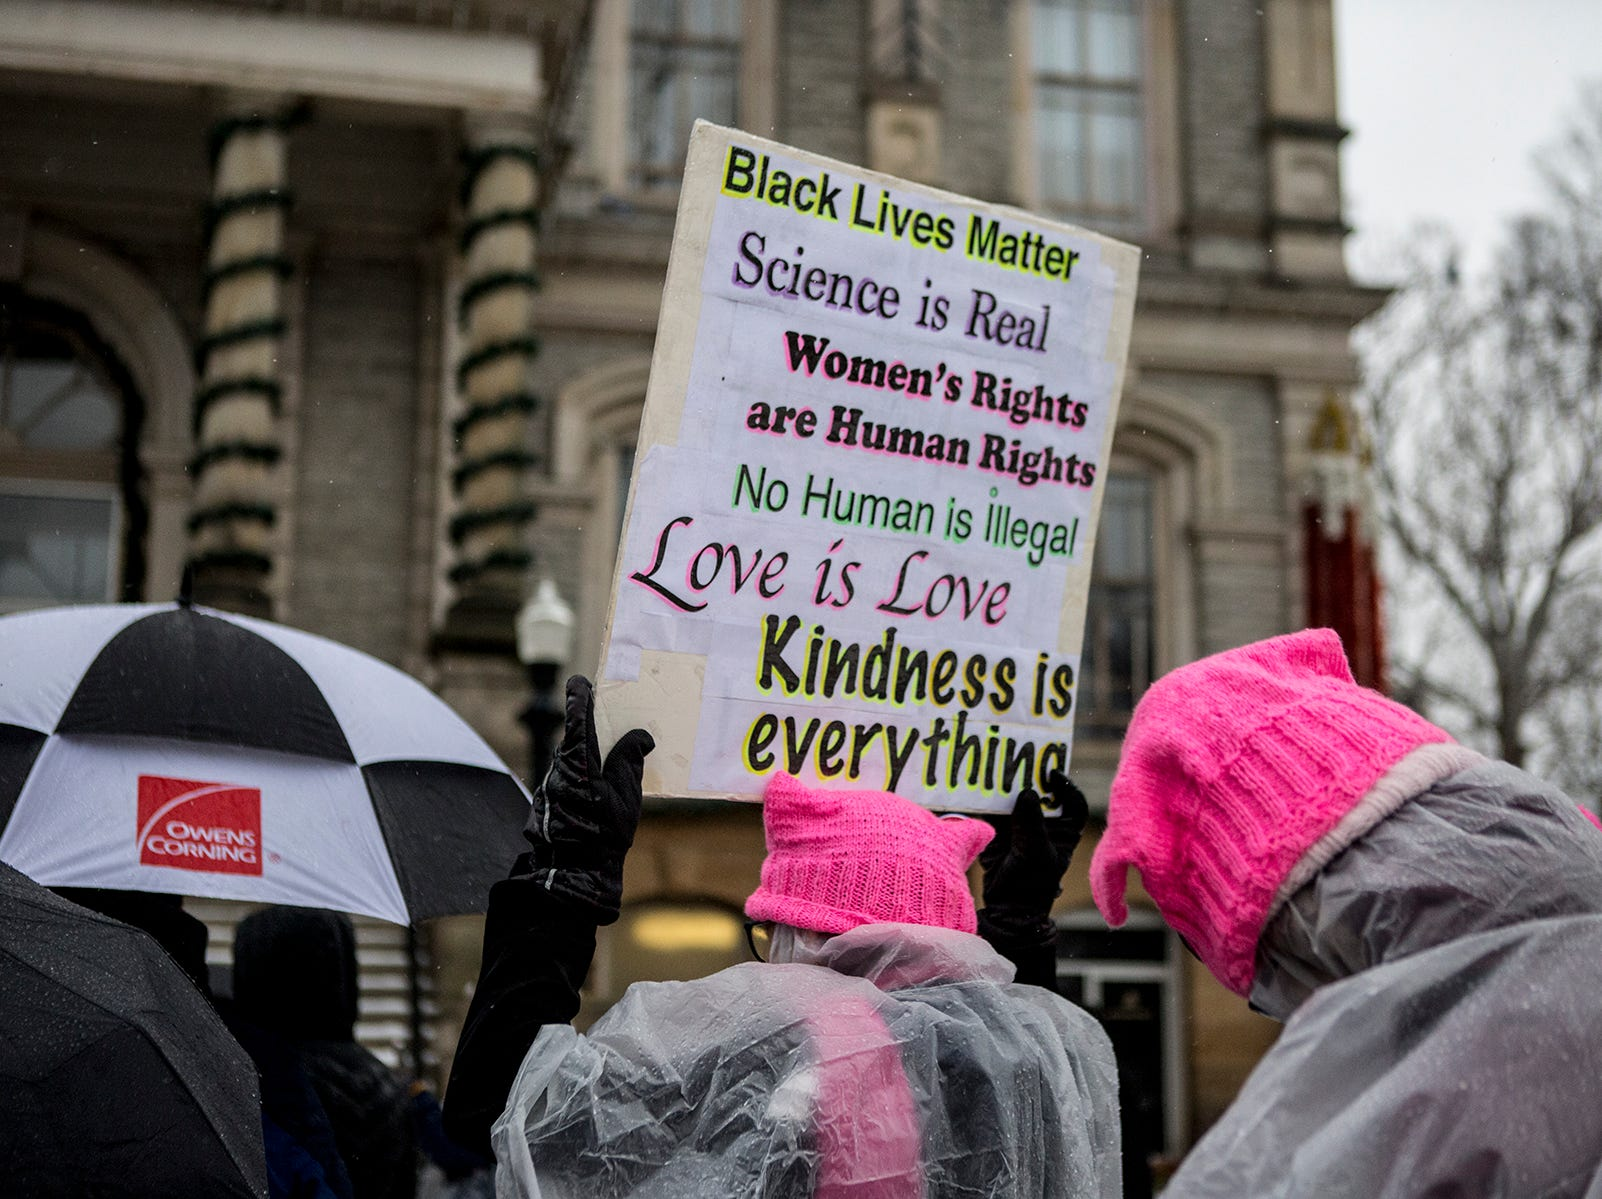 Around 50 people braved the cold rain and threat of a snowstorm to turn out for the Women's March in downtown Newark, January 19.